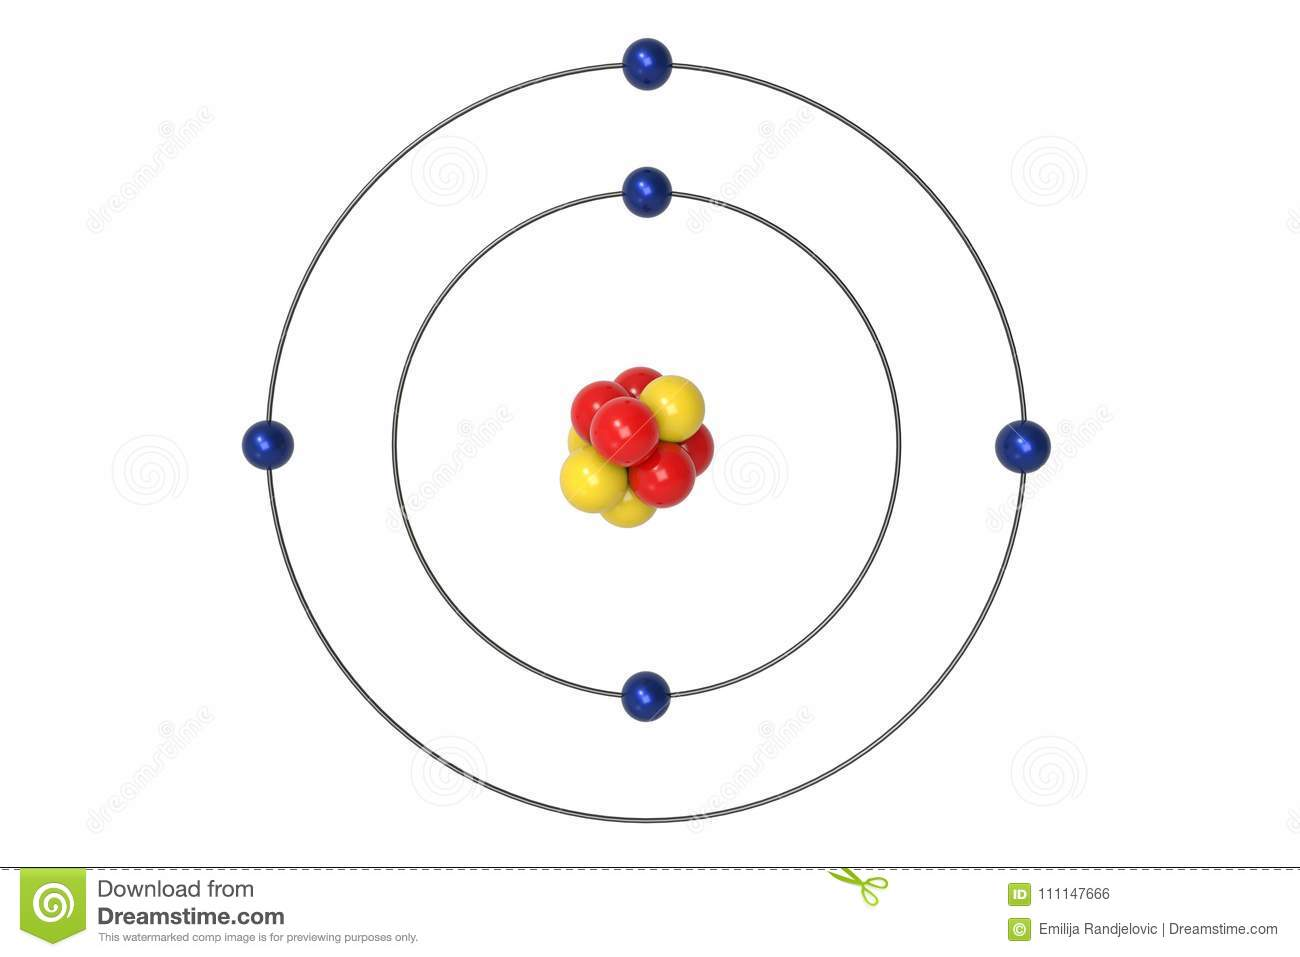 Boron Atom Bohr Model With Proton Neutron And Electron